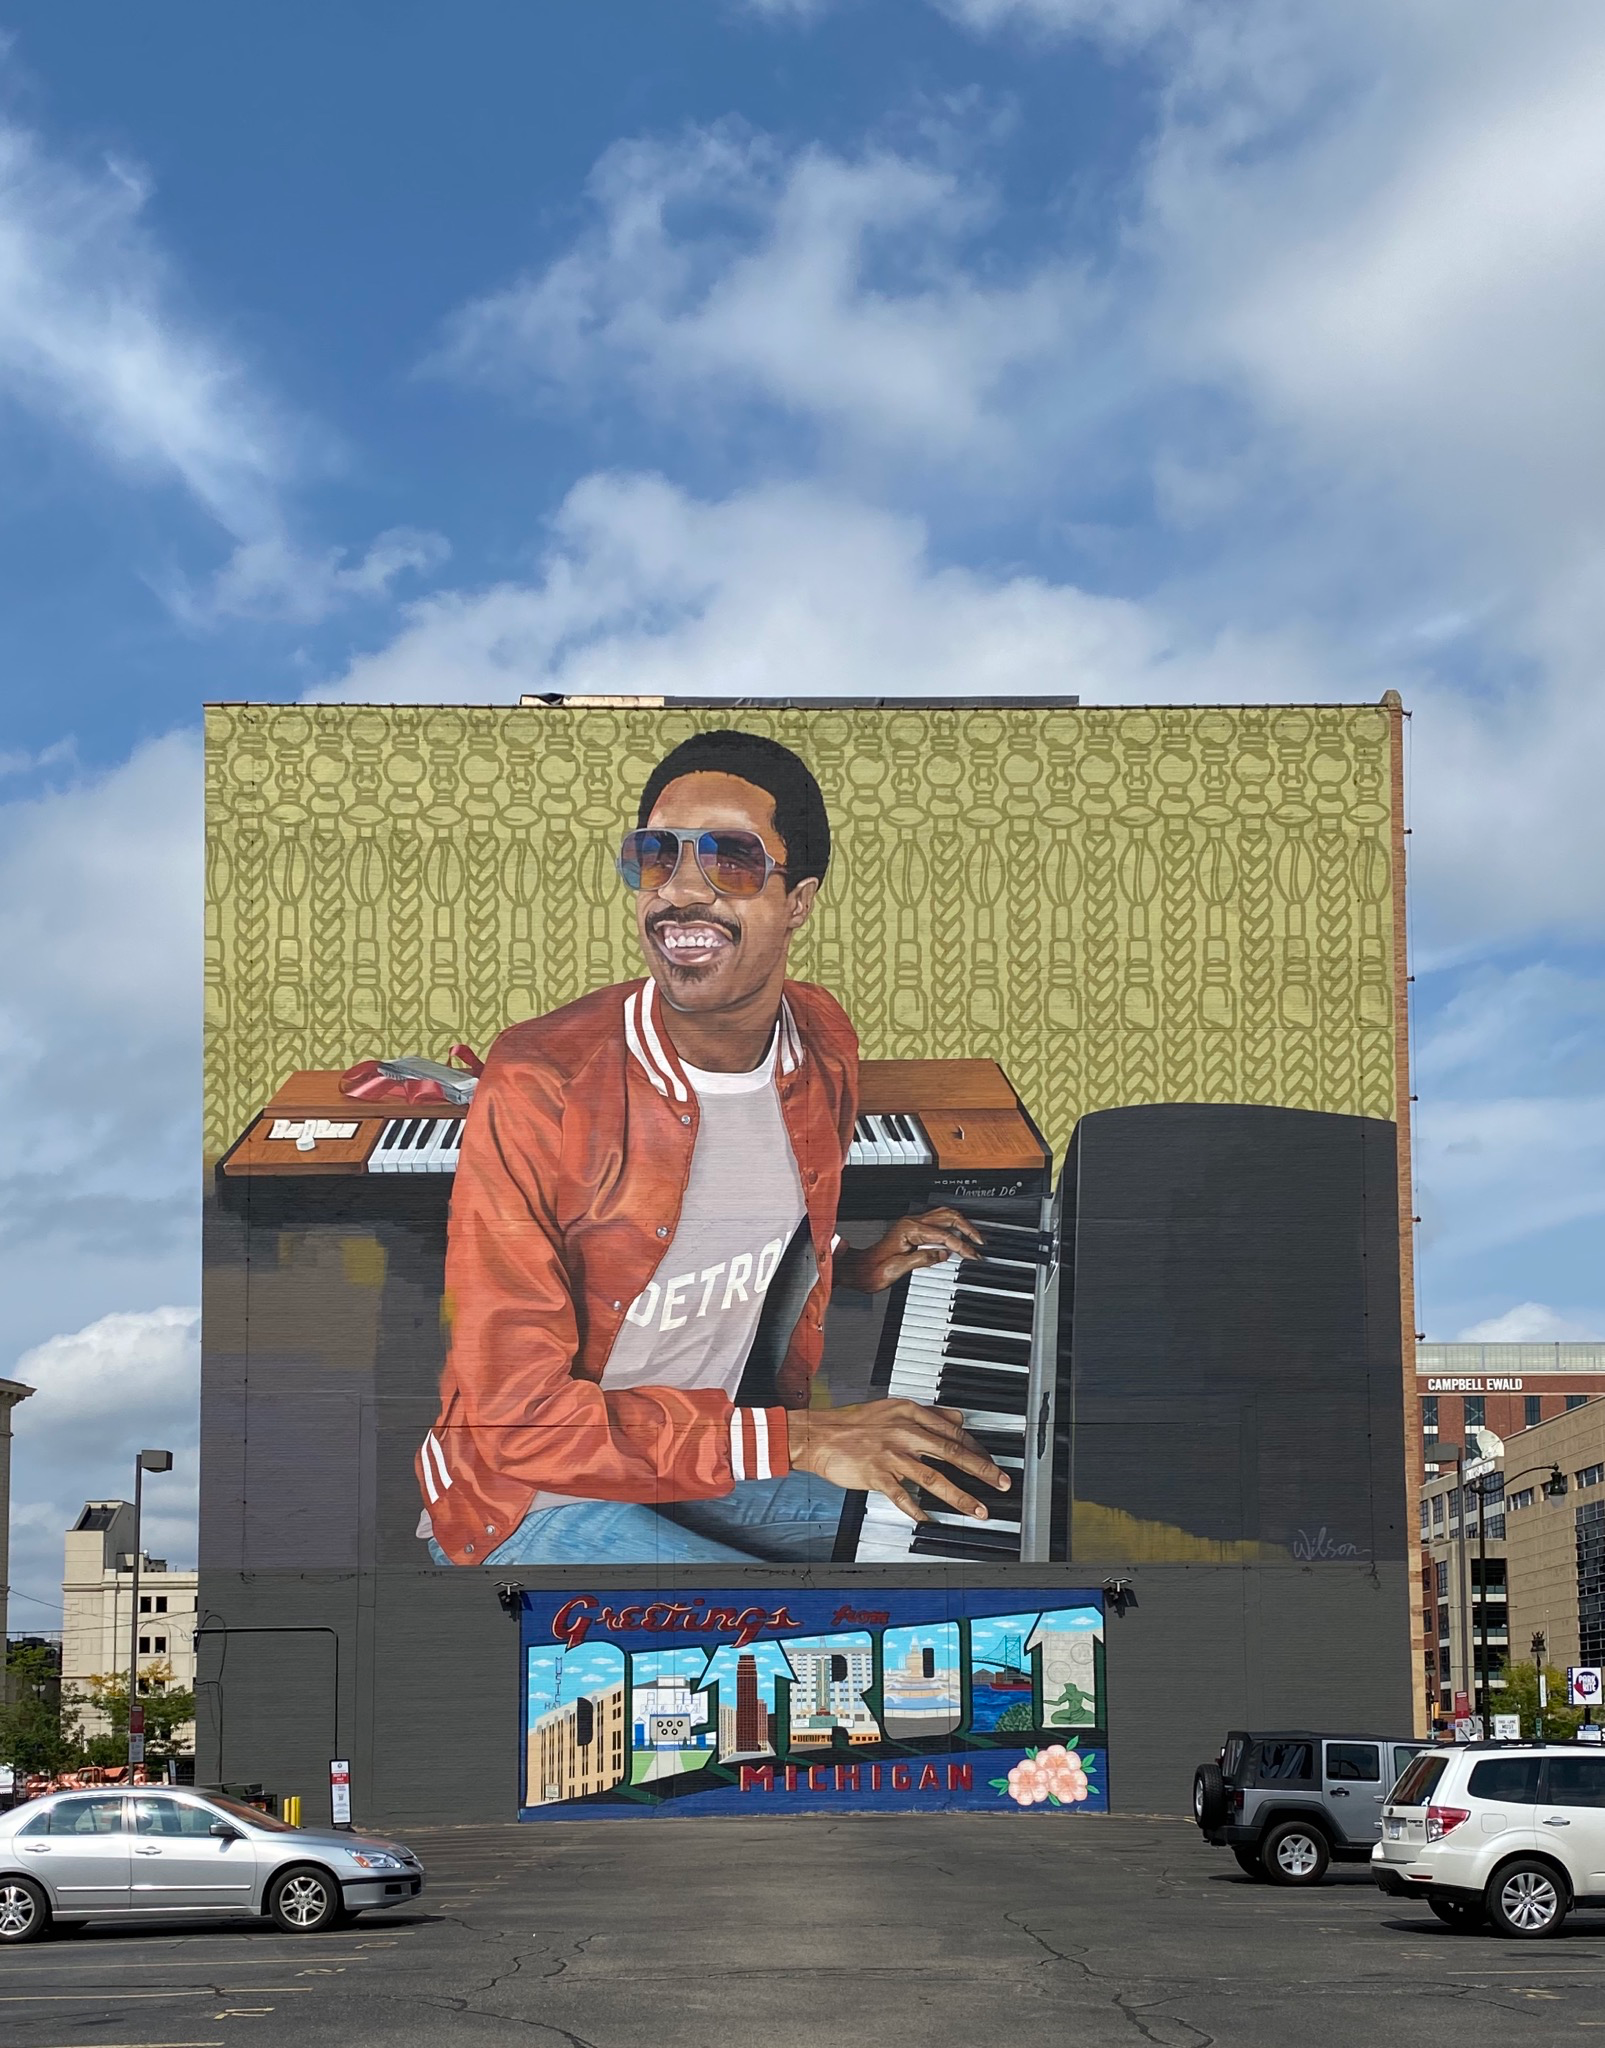 A mural of Stevie Wonder at the piano with Detroit spelled out beneath it